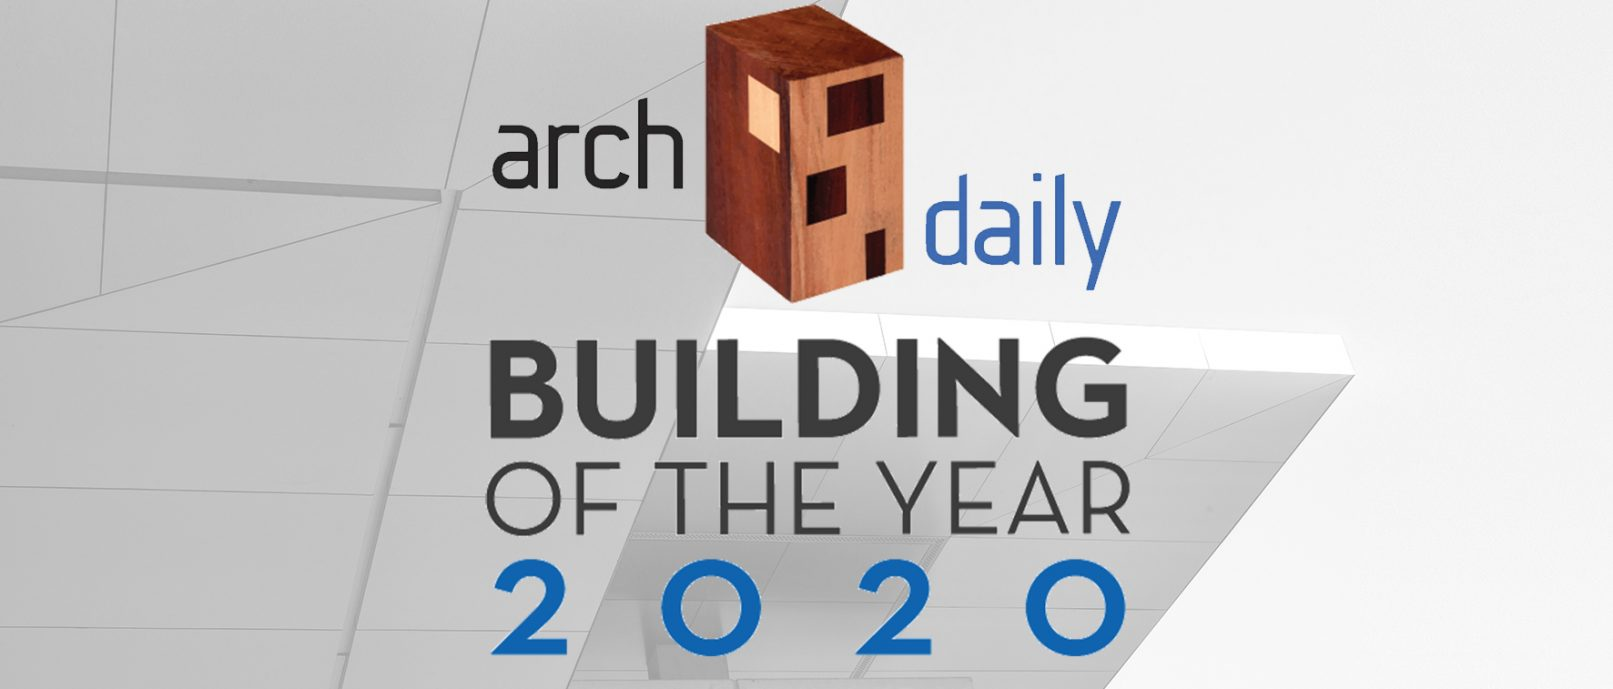 Nominate dhk for ArchDaily's 2020 Building of the Year!